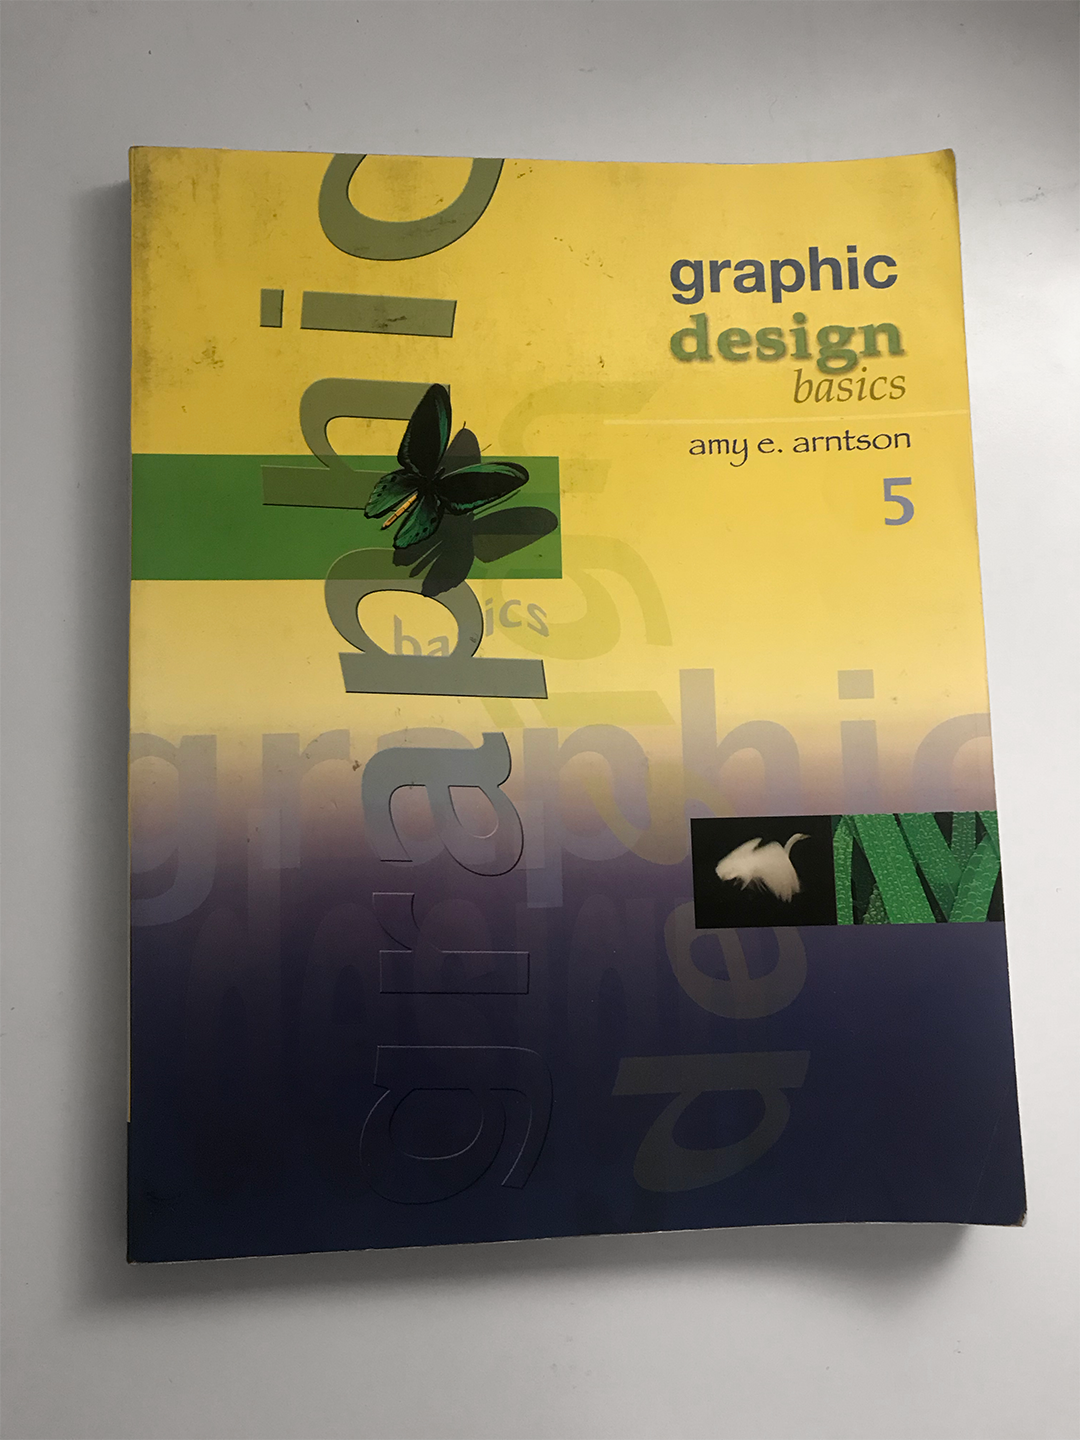 graphic-design-basics-5-illustration-book-cover-logo-textbook-01.png